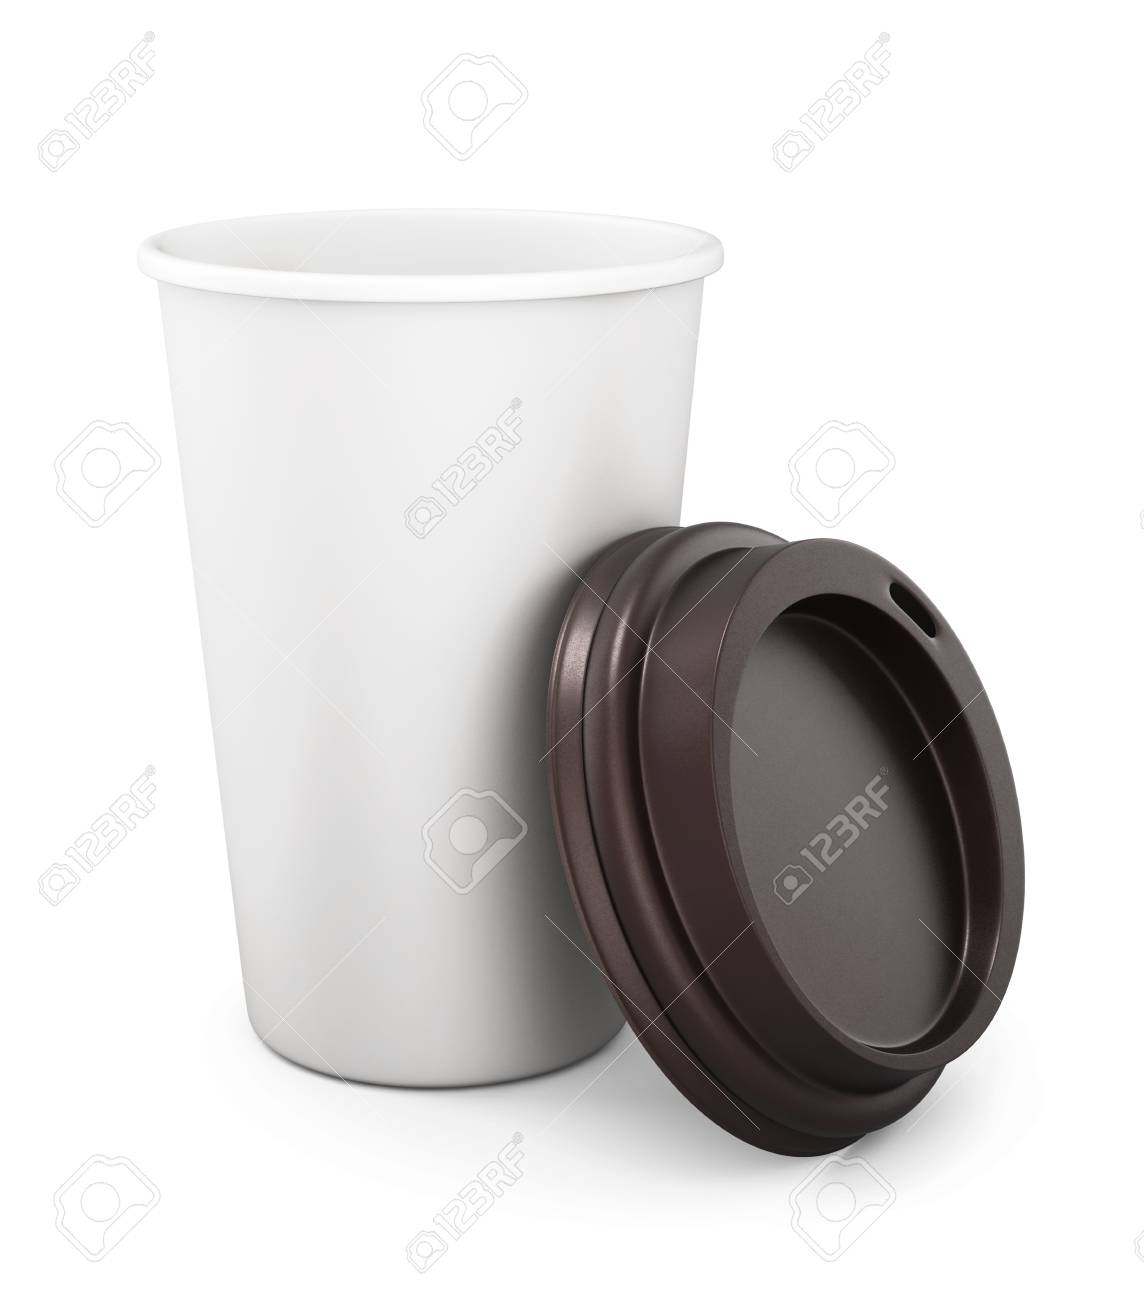 Tasse Mit Deckel Stock Photo